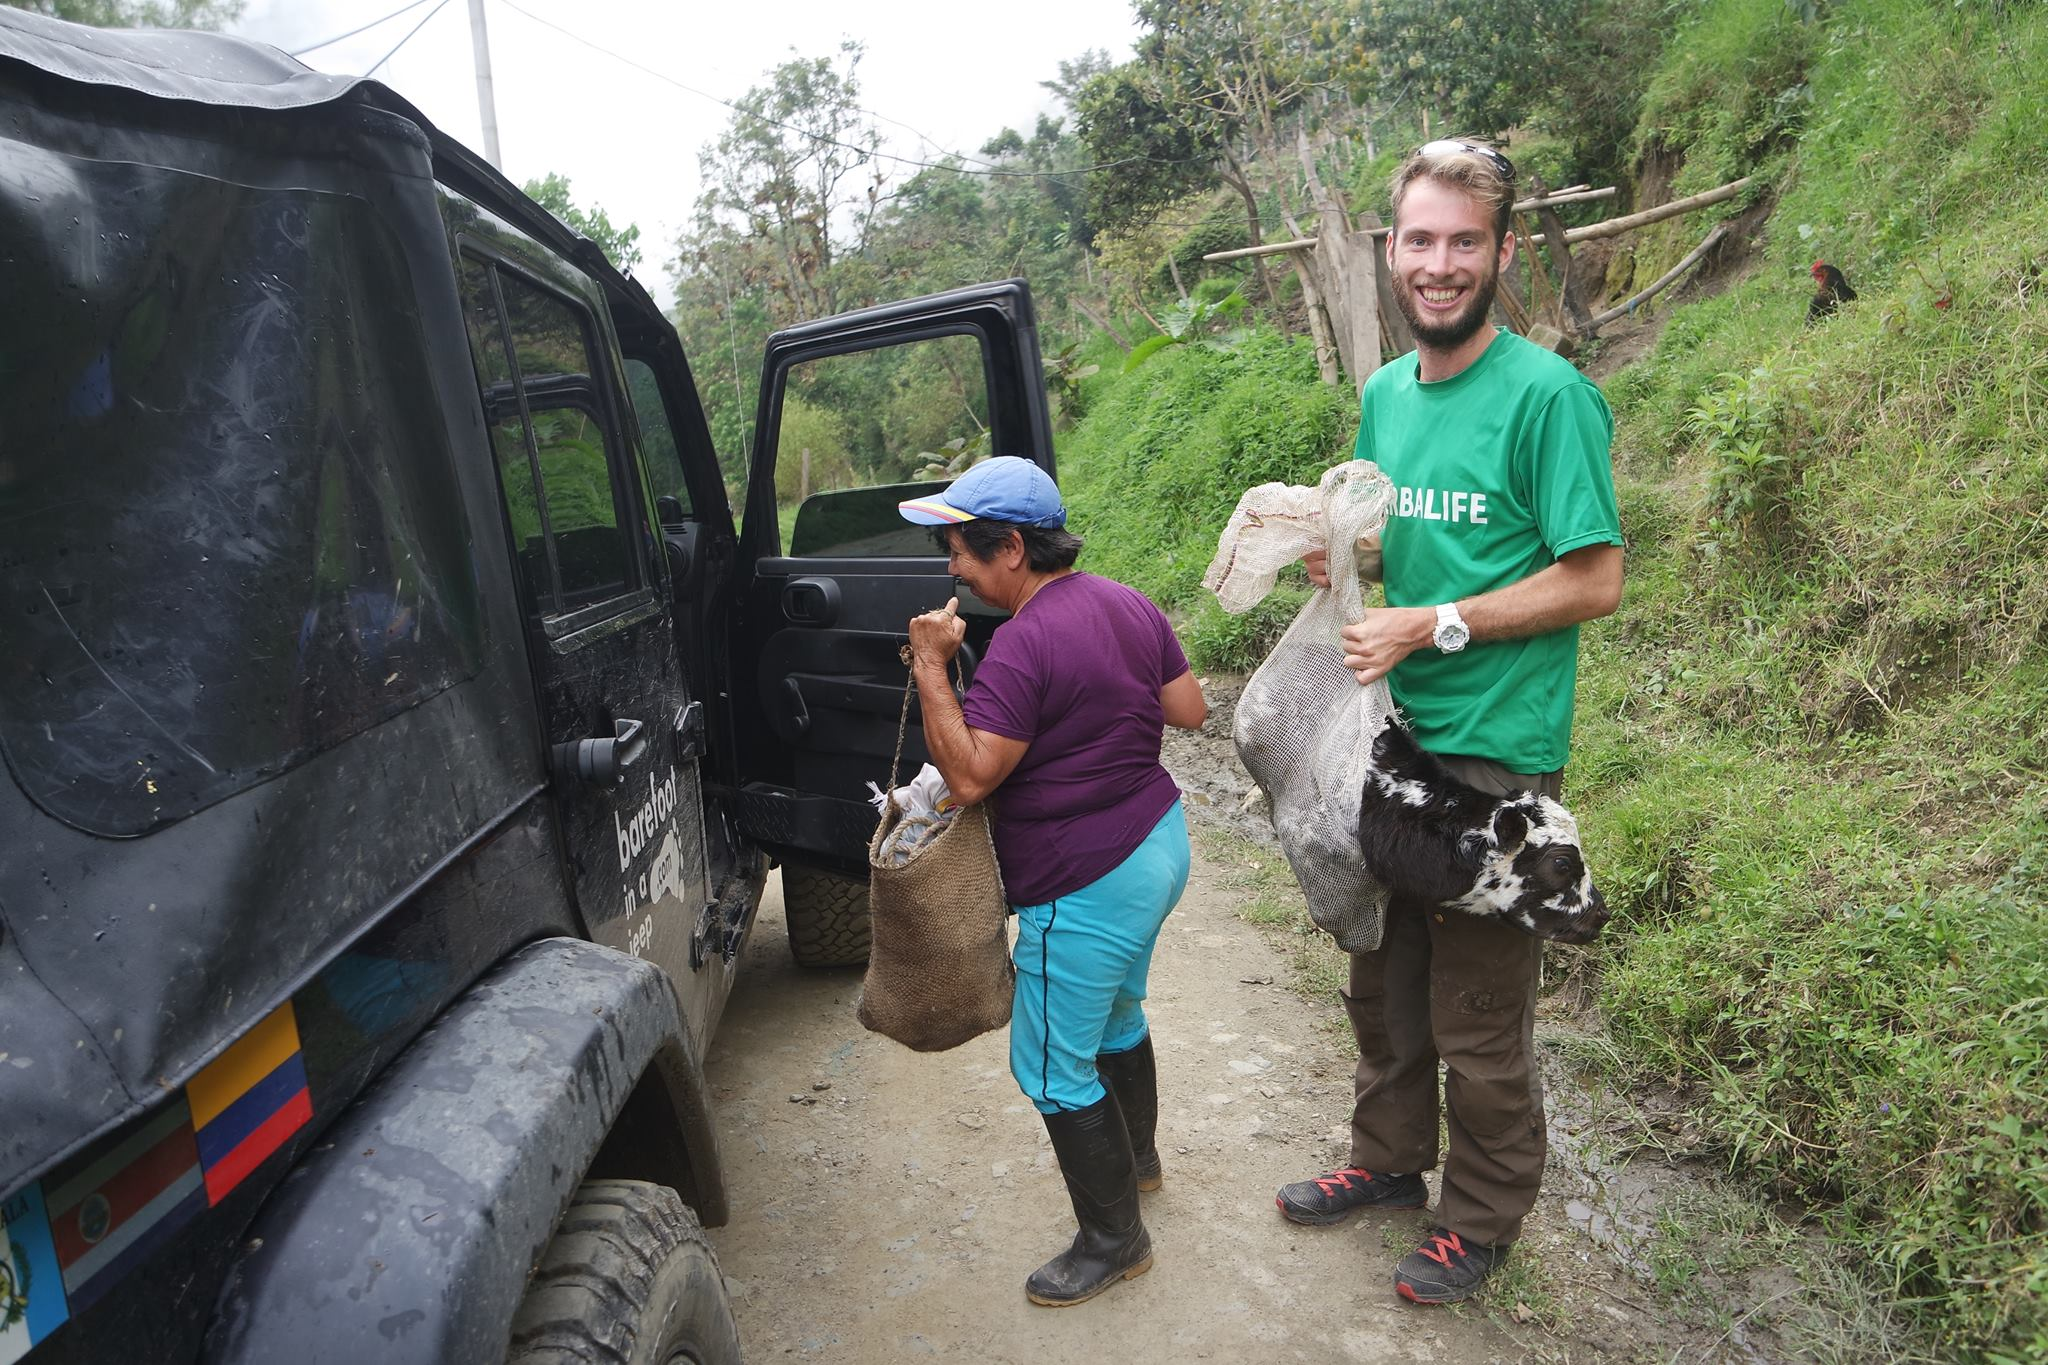 Helping a grand-ma to carry a cow, somewhere in the coca field, lost near Salento.